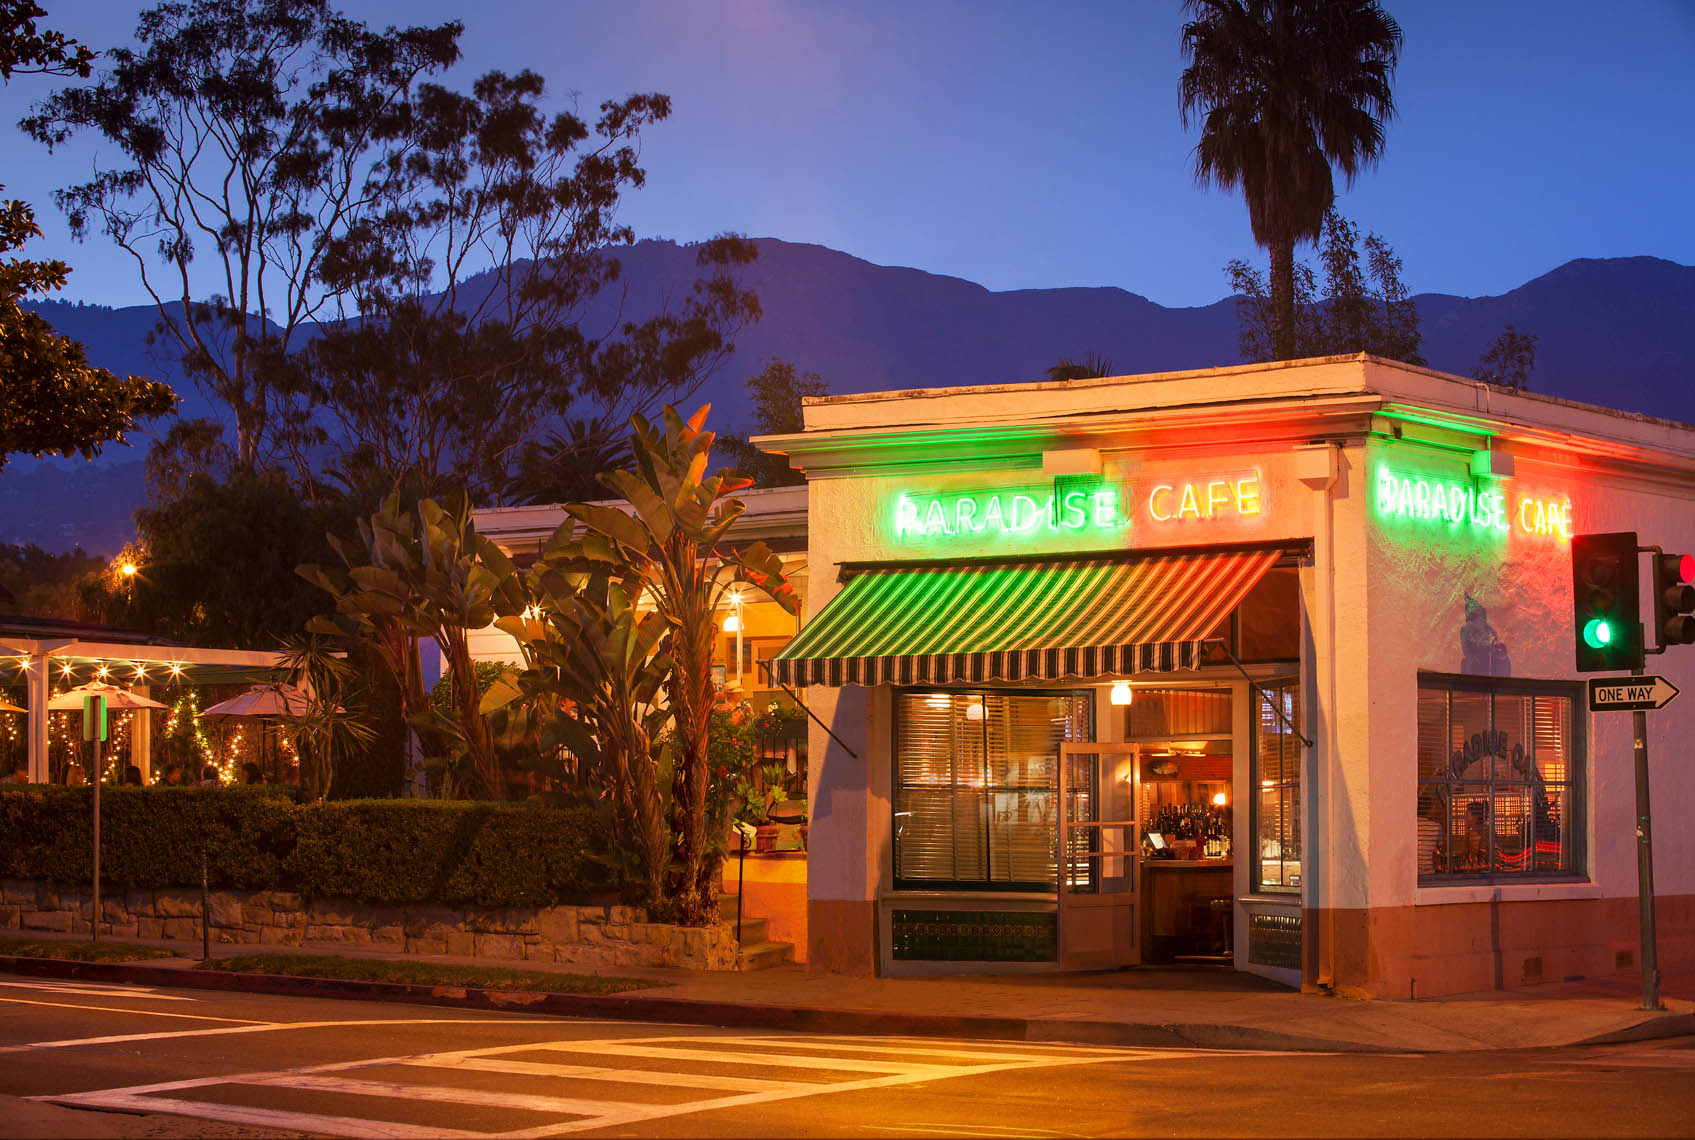 Paradise Cafe at night, Santa Barbara, California